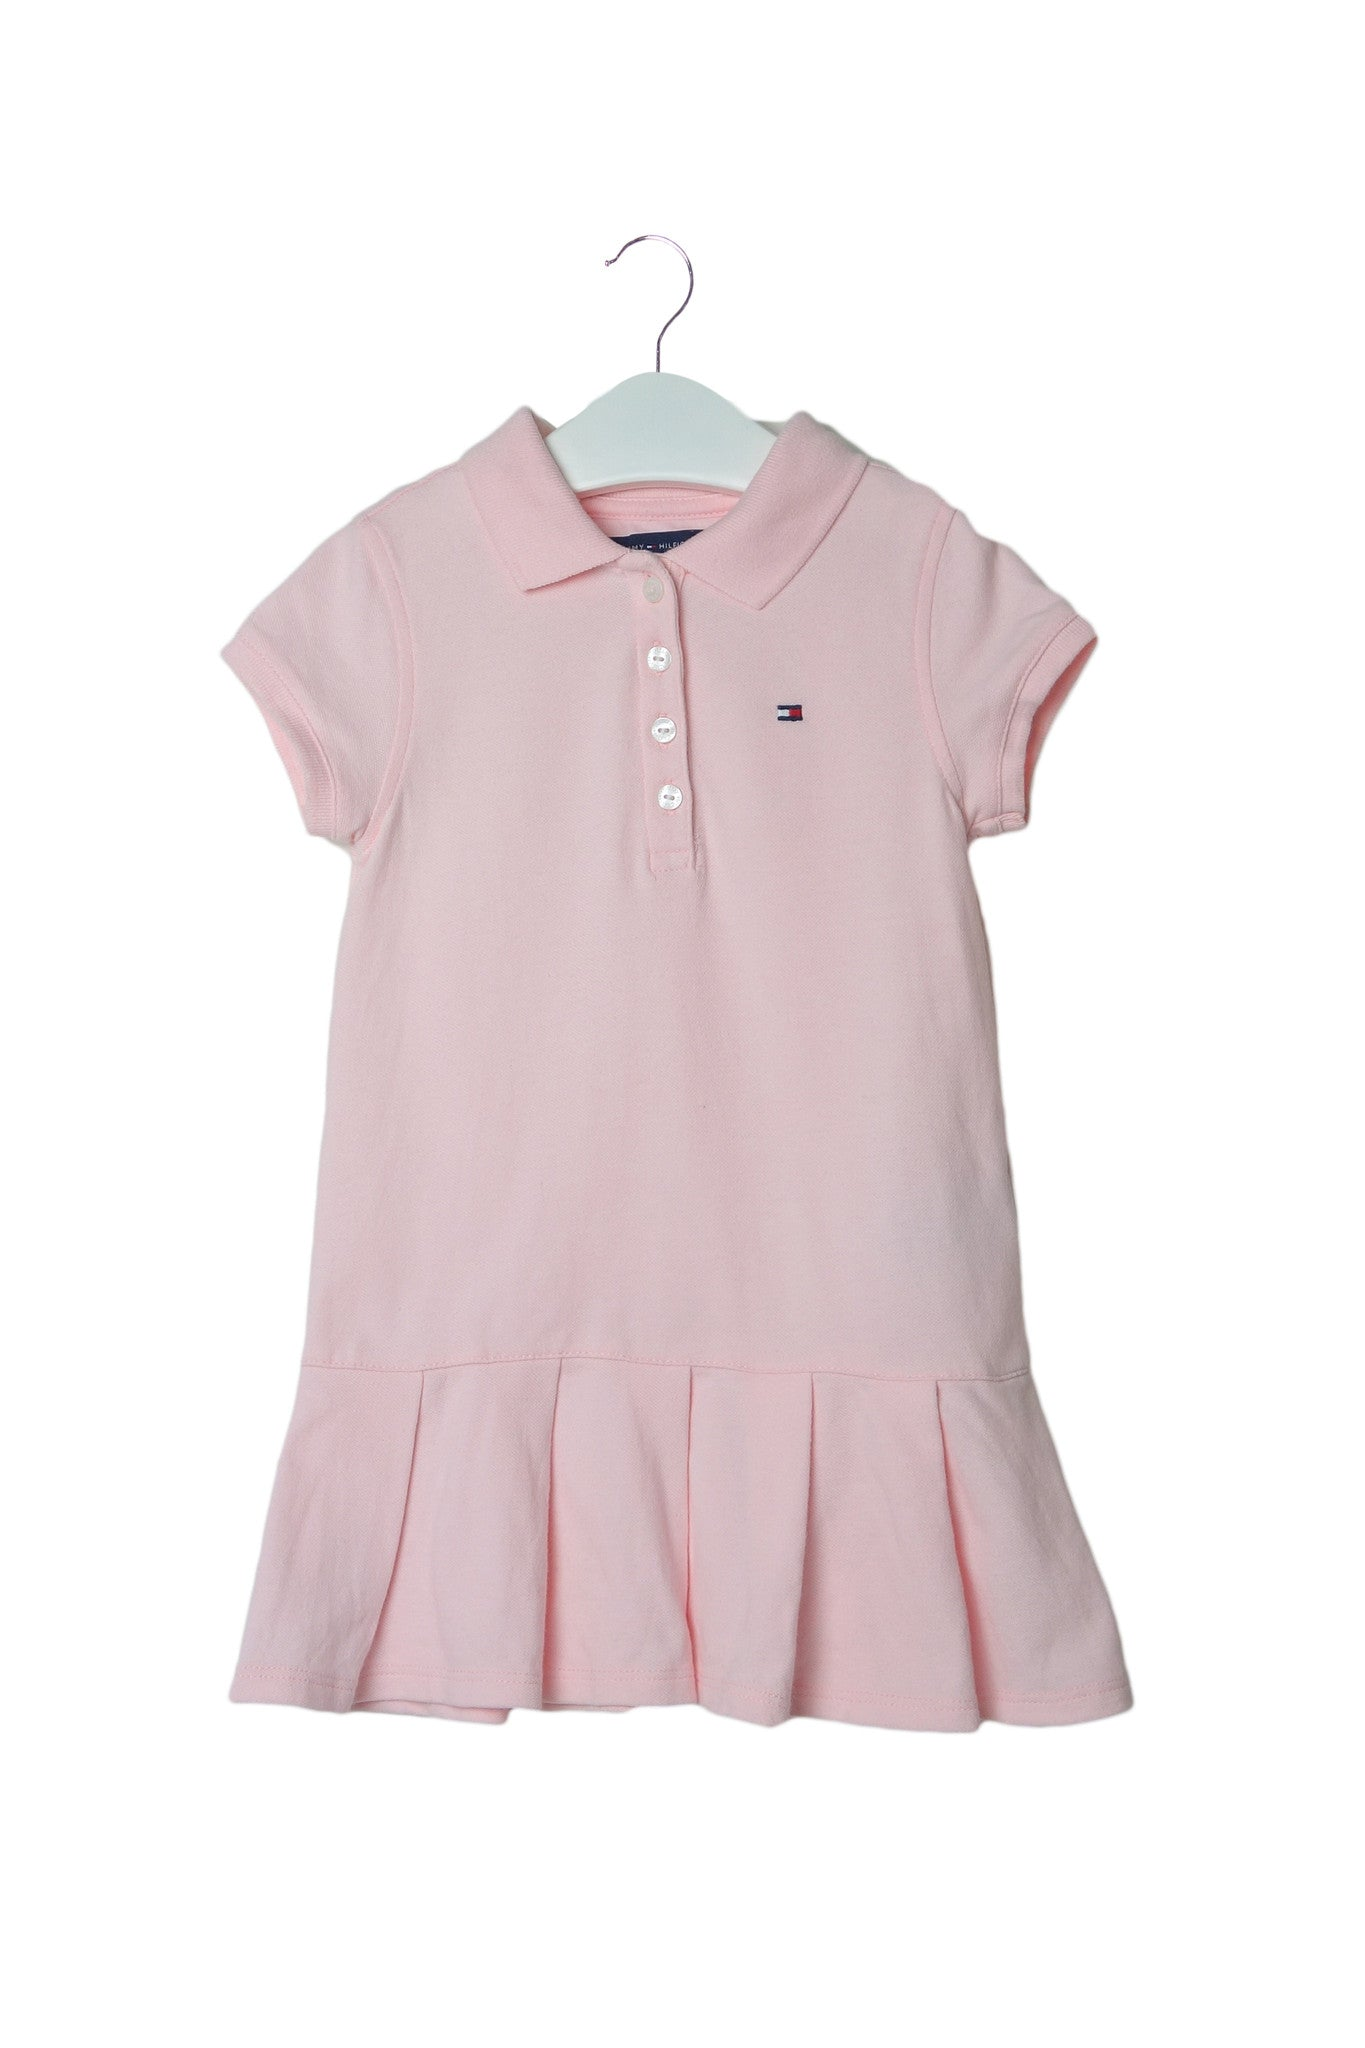 10002754 Tommy Hilfiger Kids~Dress and Bloomer 2T at Retykle